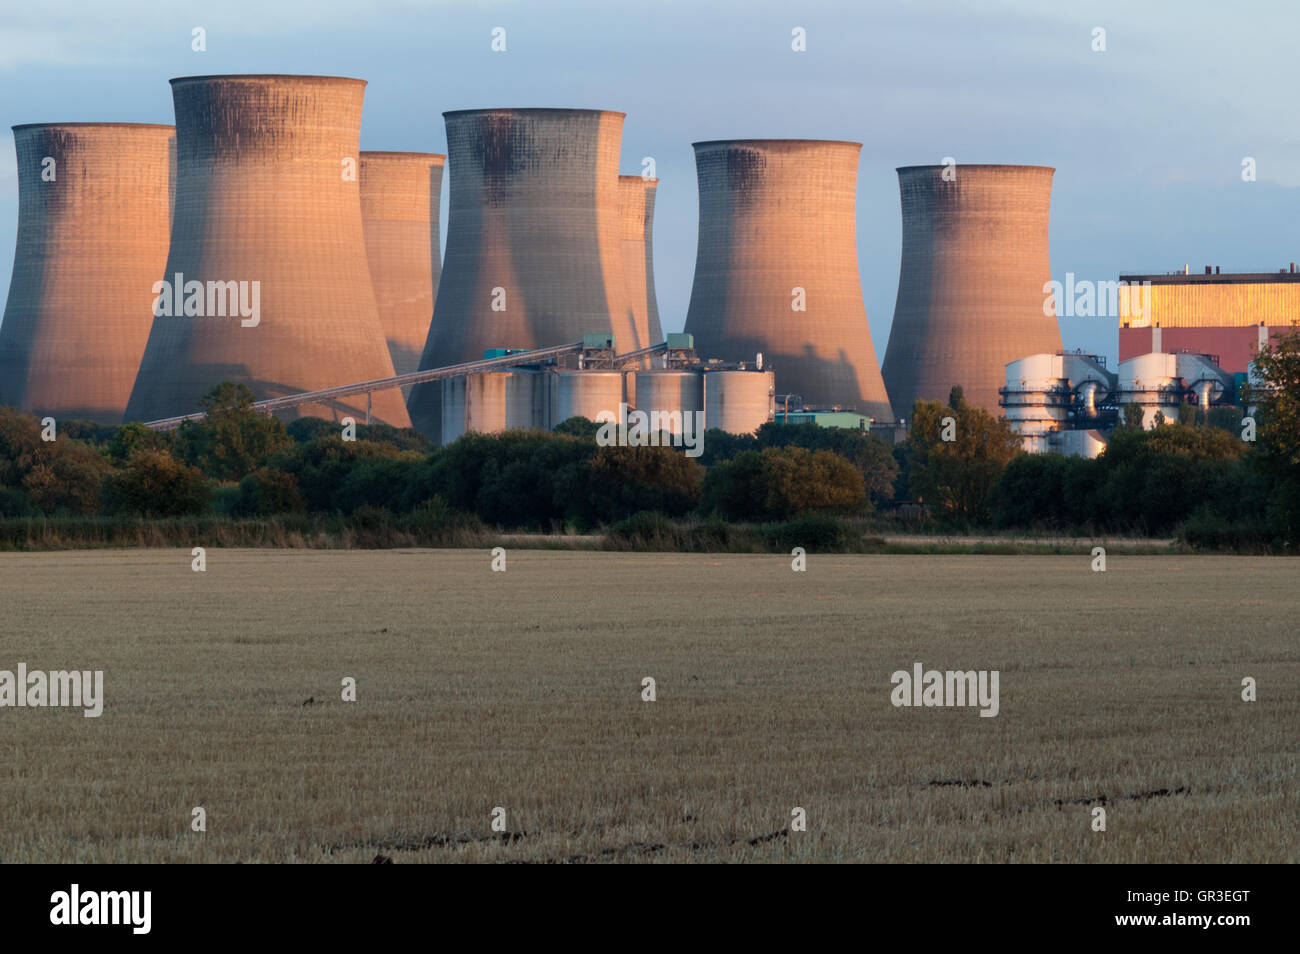 Cottam power station nottinghamshire edf energy coal fired gas station cooling towers - Stock Image